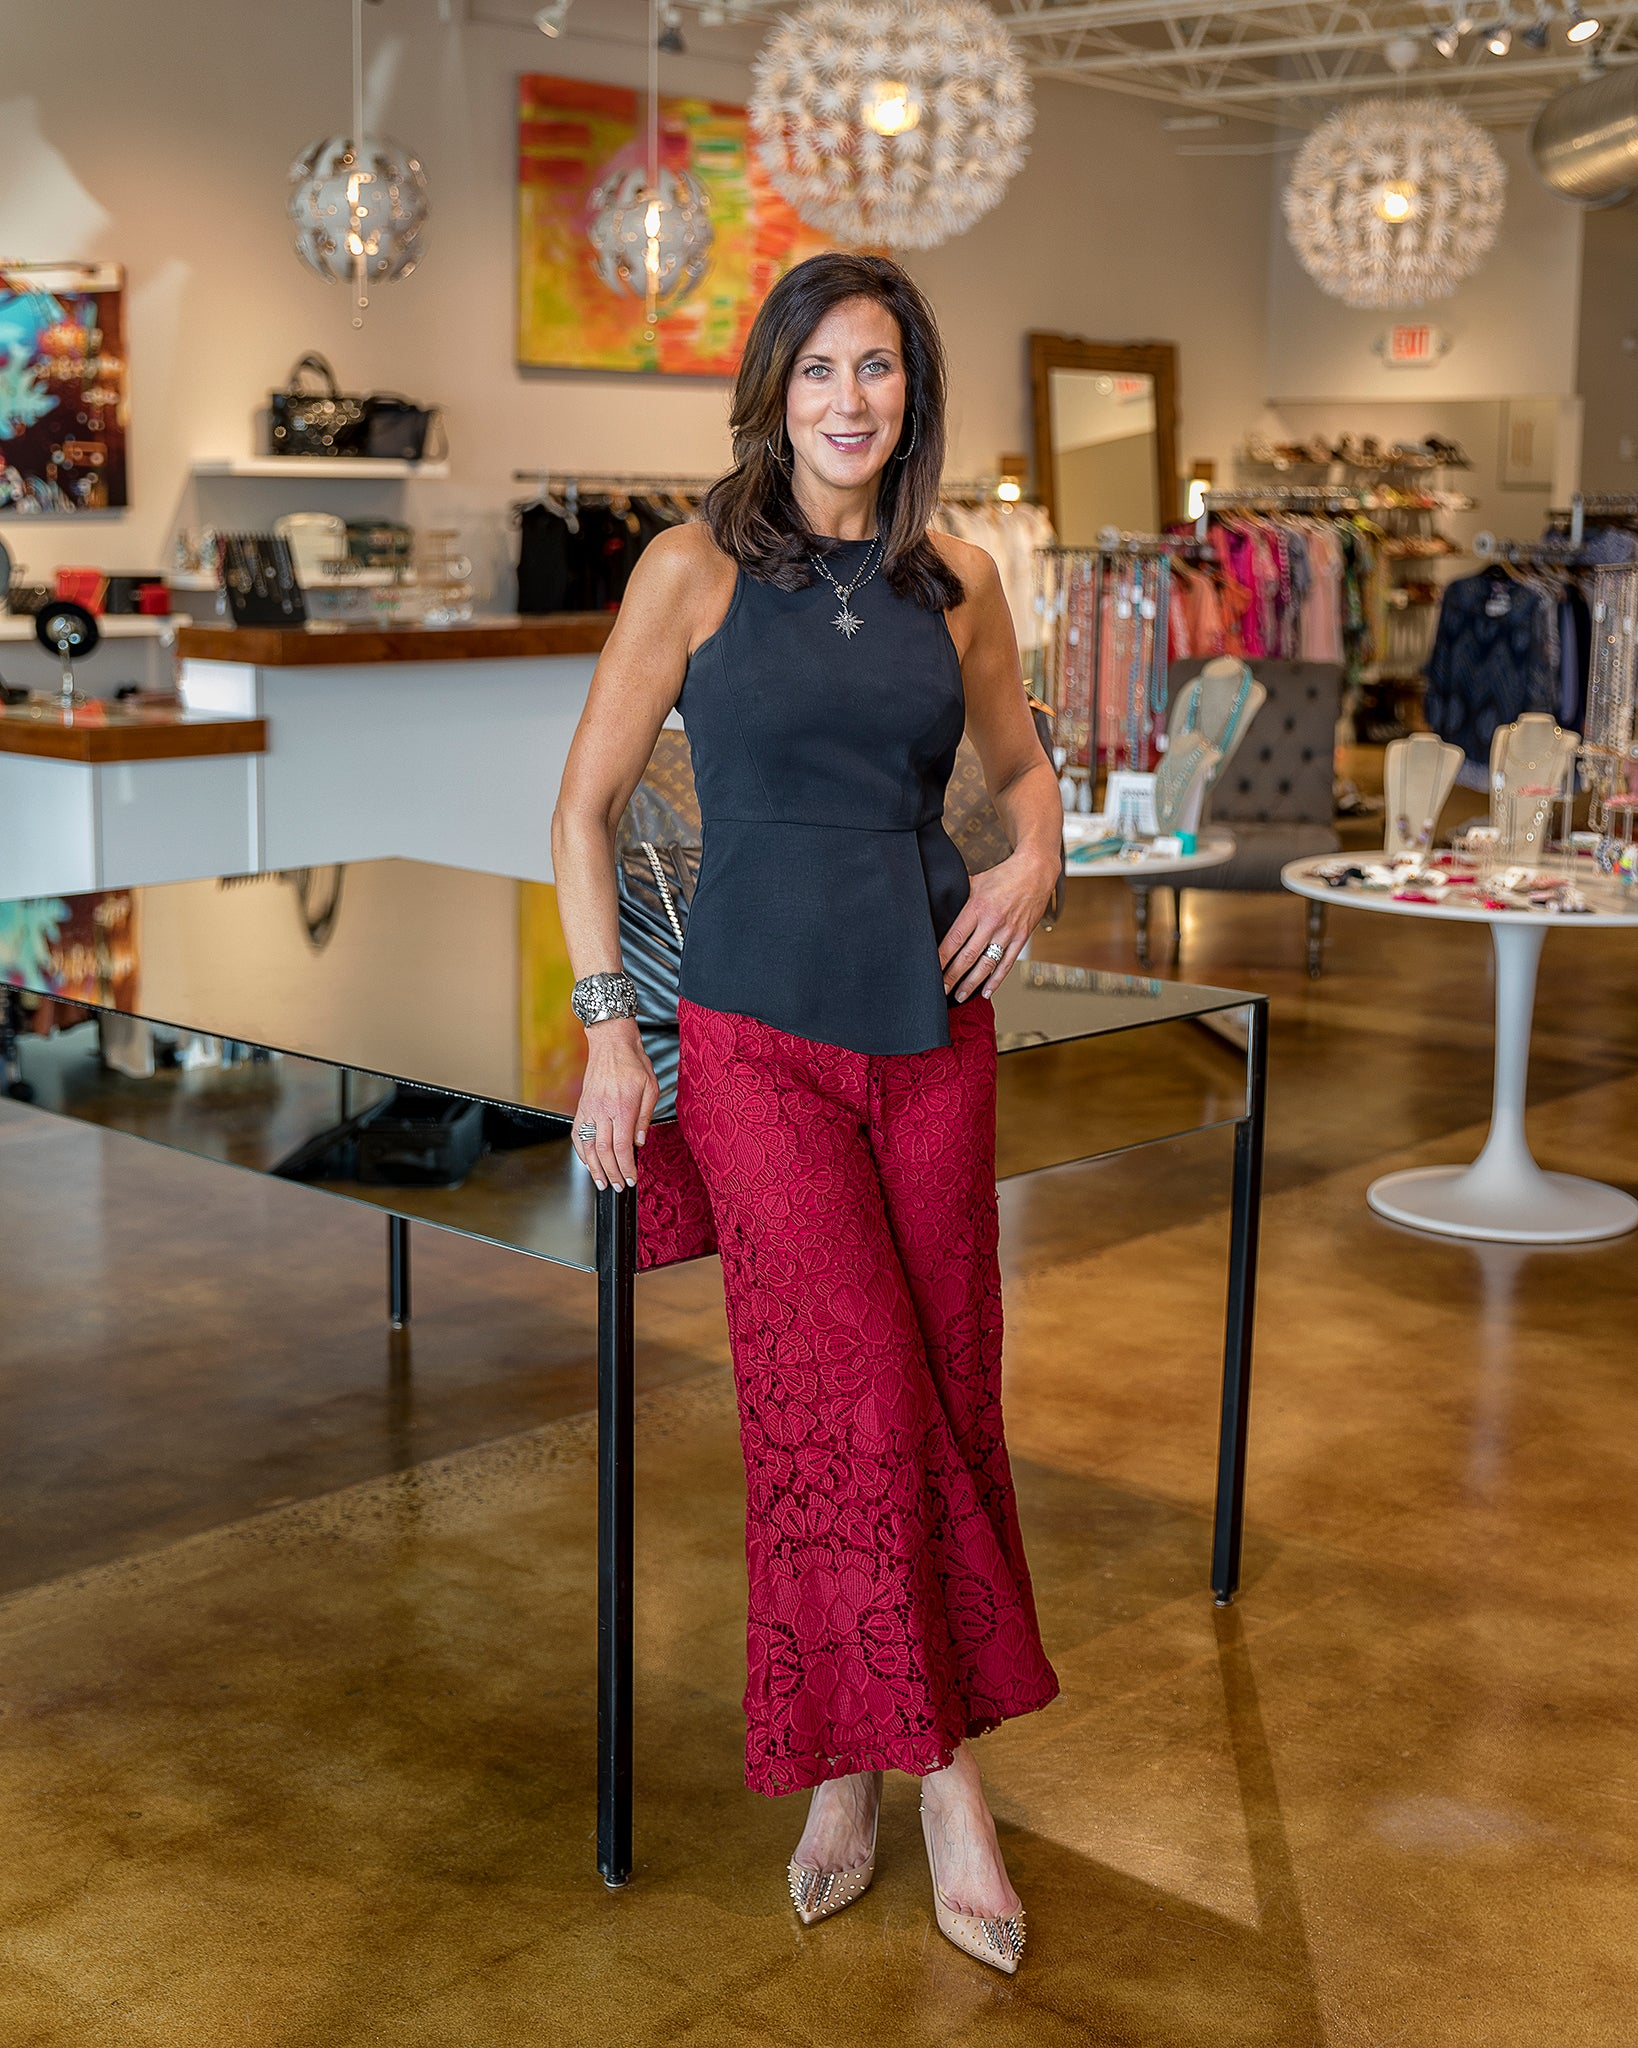 Raleigh consignment boutique owner